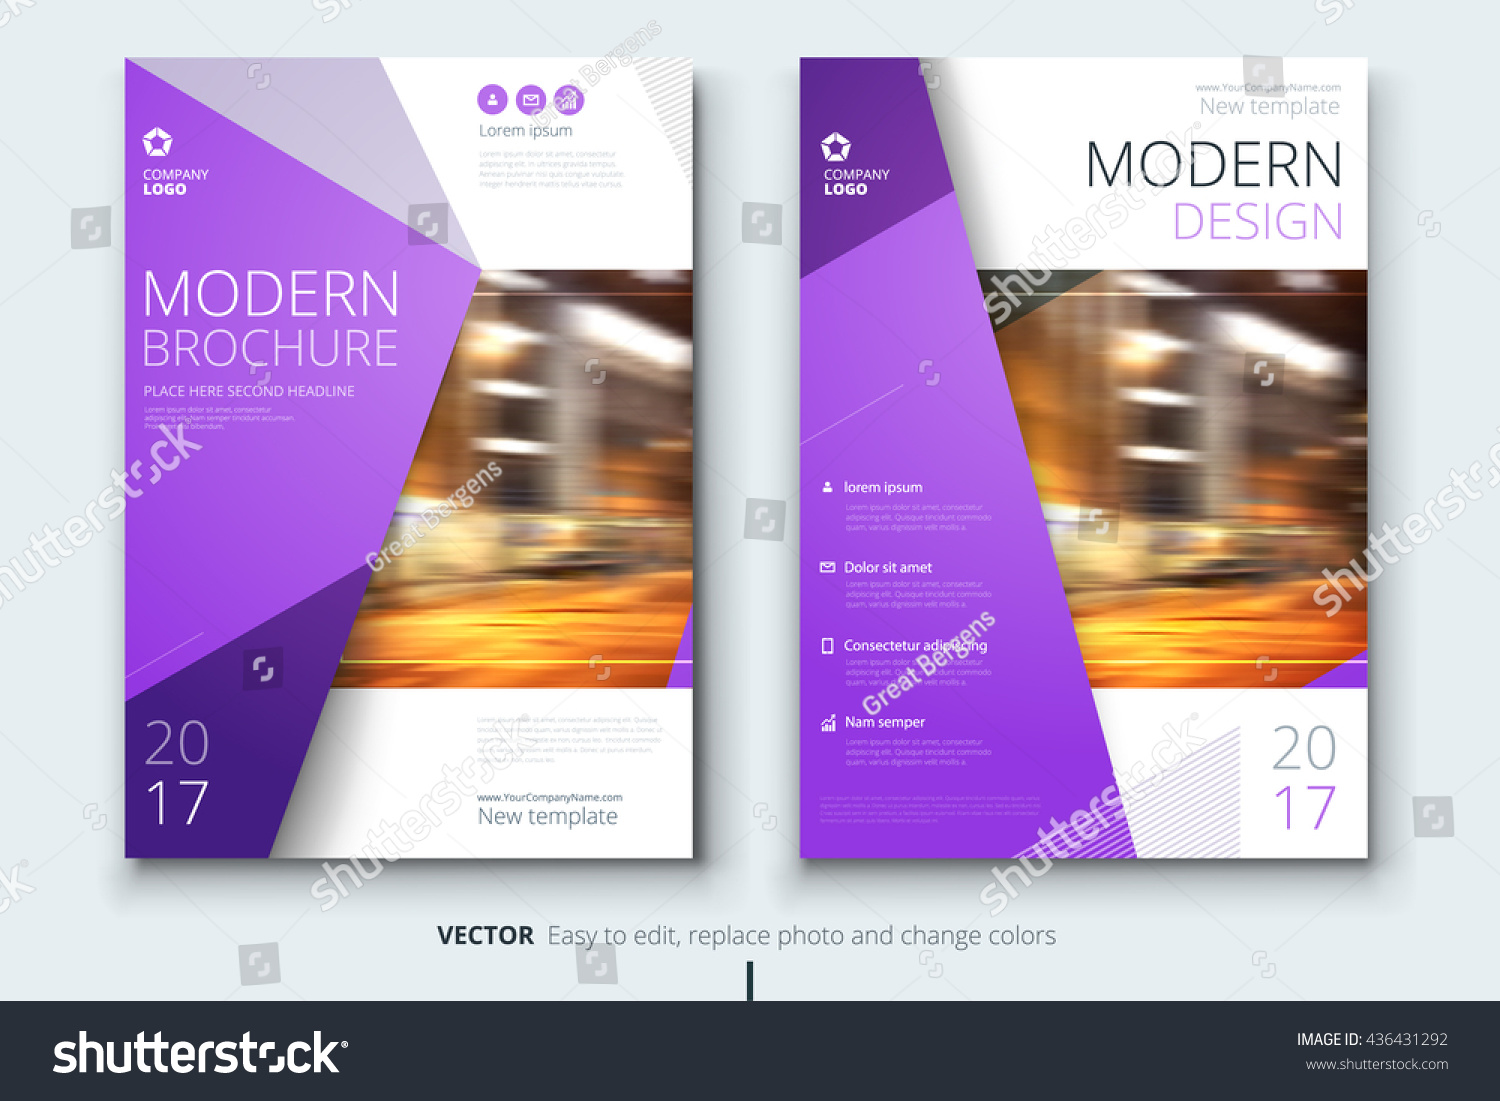 Brochure design corporate business template annual stock for Custom brochure design